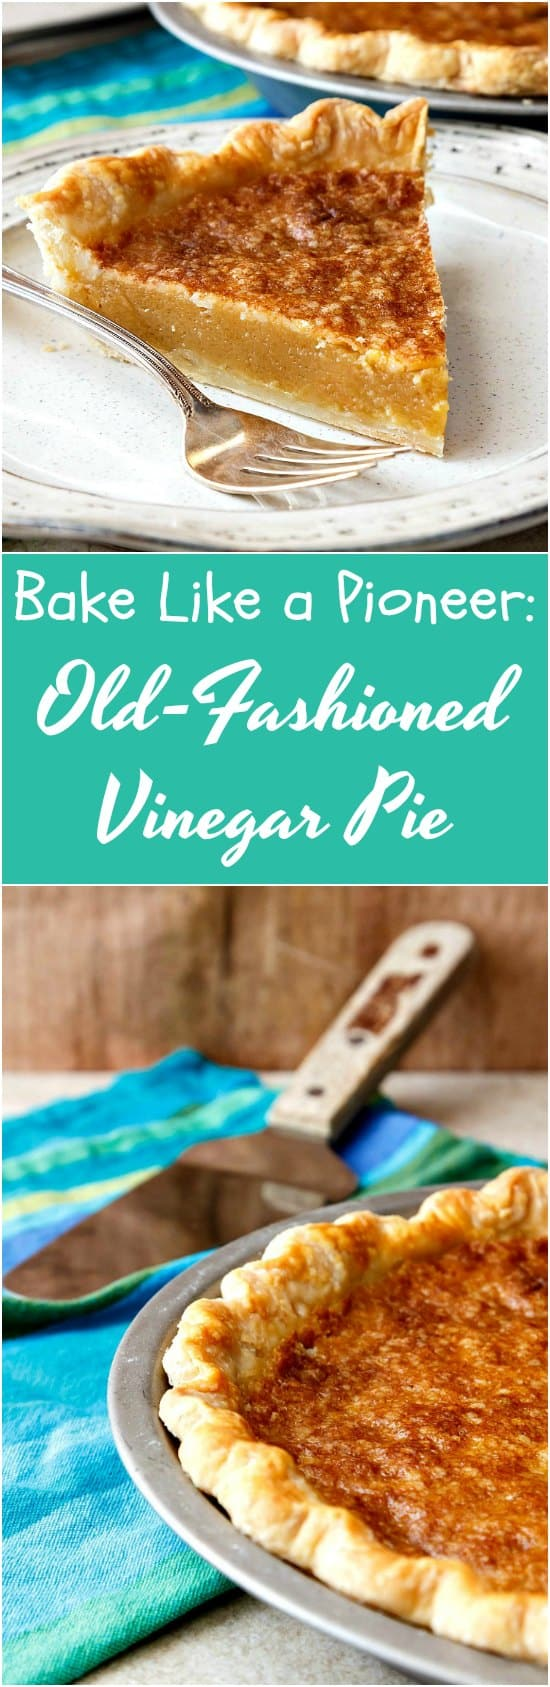 If you're in need of pie but don't have much time or much in your fridge that seems pie worthy, give this vinegar pie a try. It's sweet and mildly tart like a nice lemon pie, and I can almost bet you have everything you need to make it in your kitchen and pantry right now. Enjoy! | pastrychefonline.com